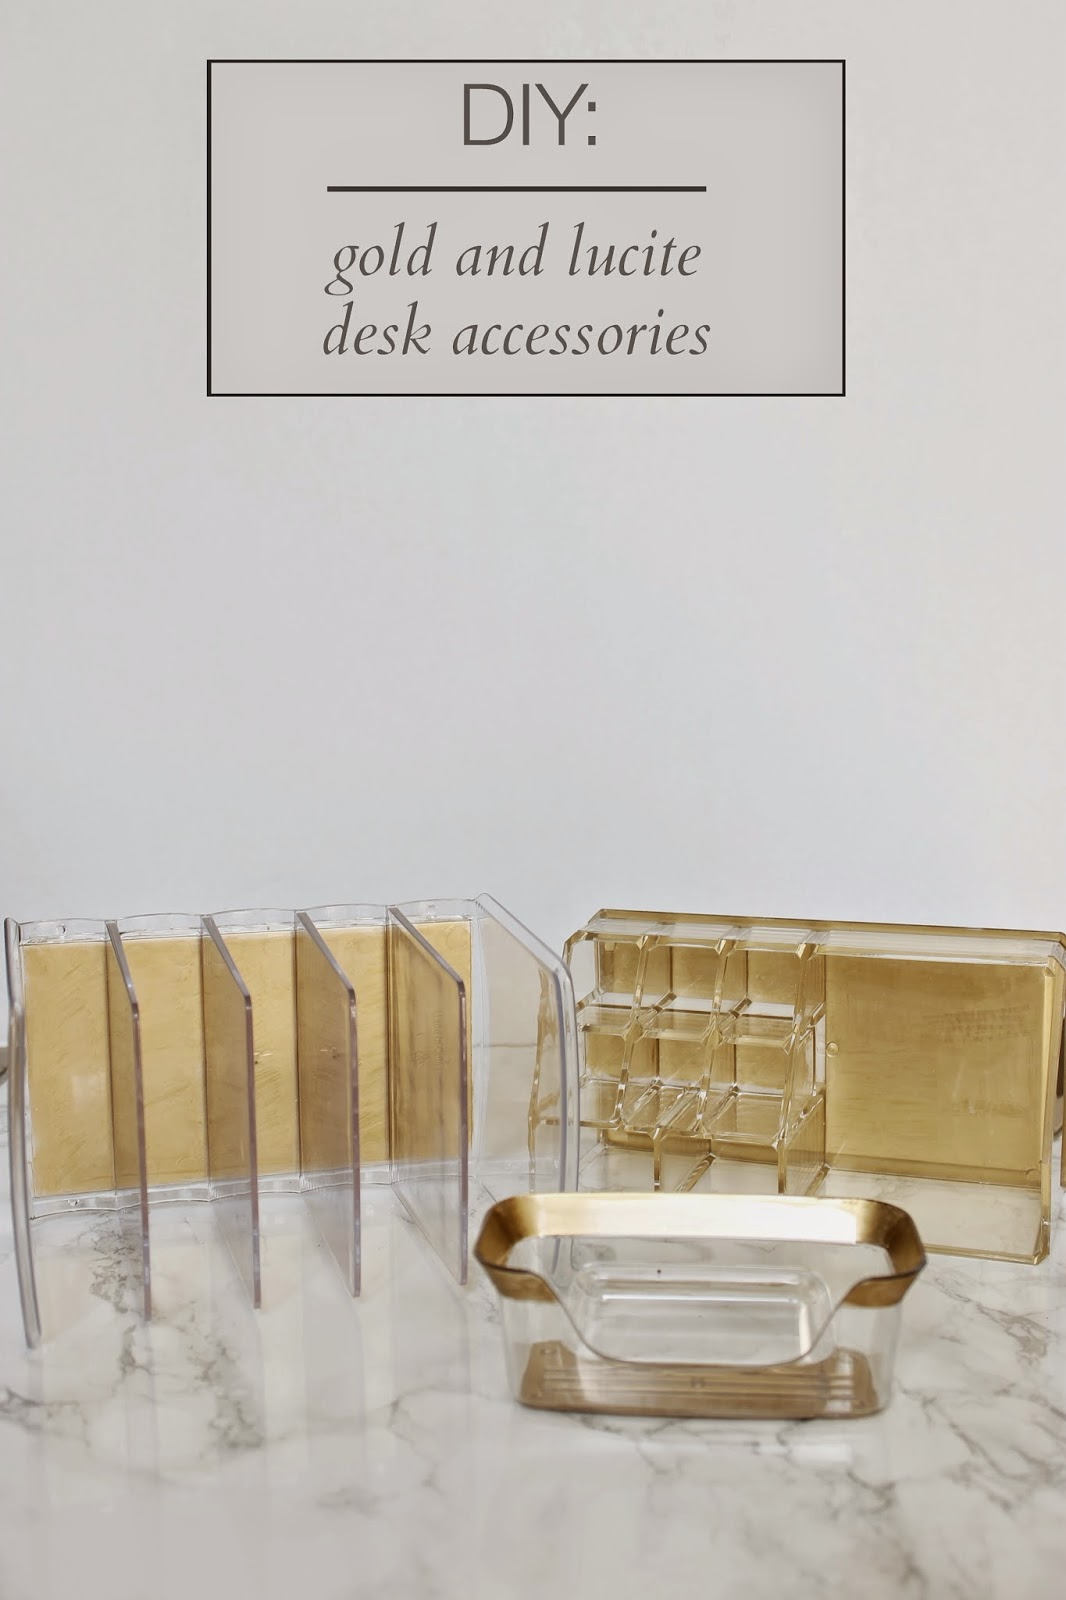 diy gold and lucite desk accessories 11